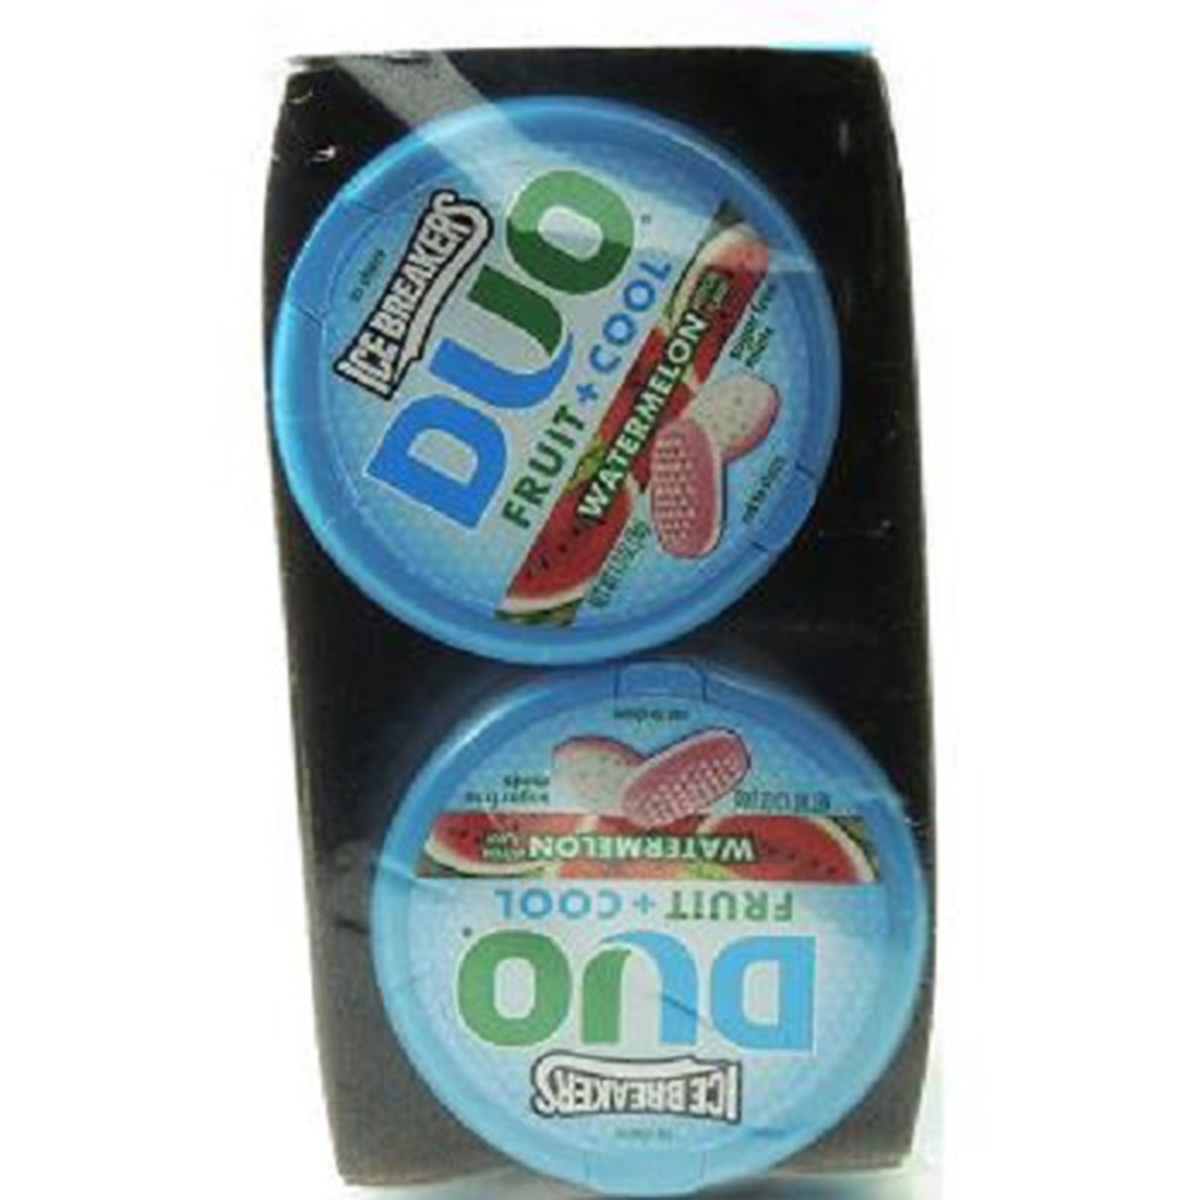 Product Of Ice Breakers Duo, Mints Watermelon - Can, Count 8 (1.3 oz) - Mints / Grab Varieties & Flavors